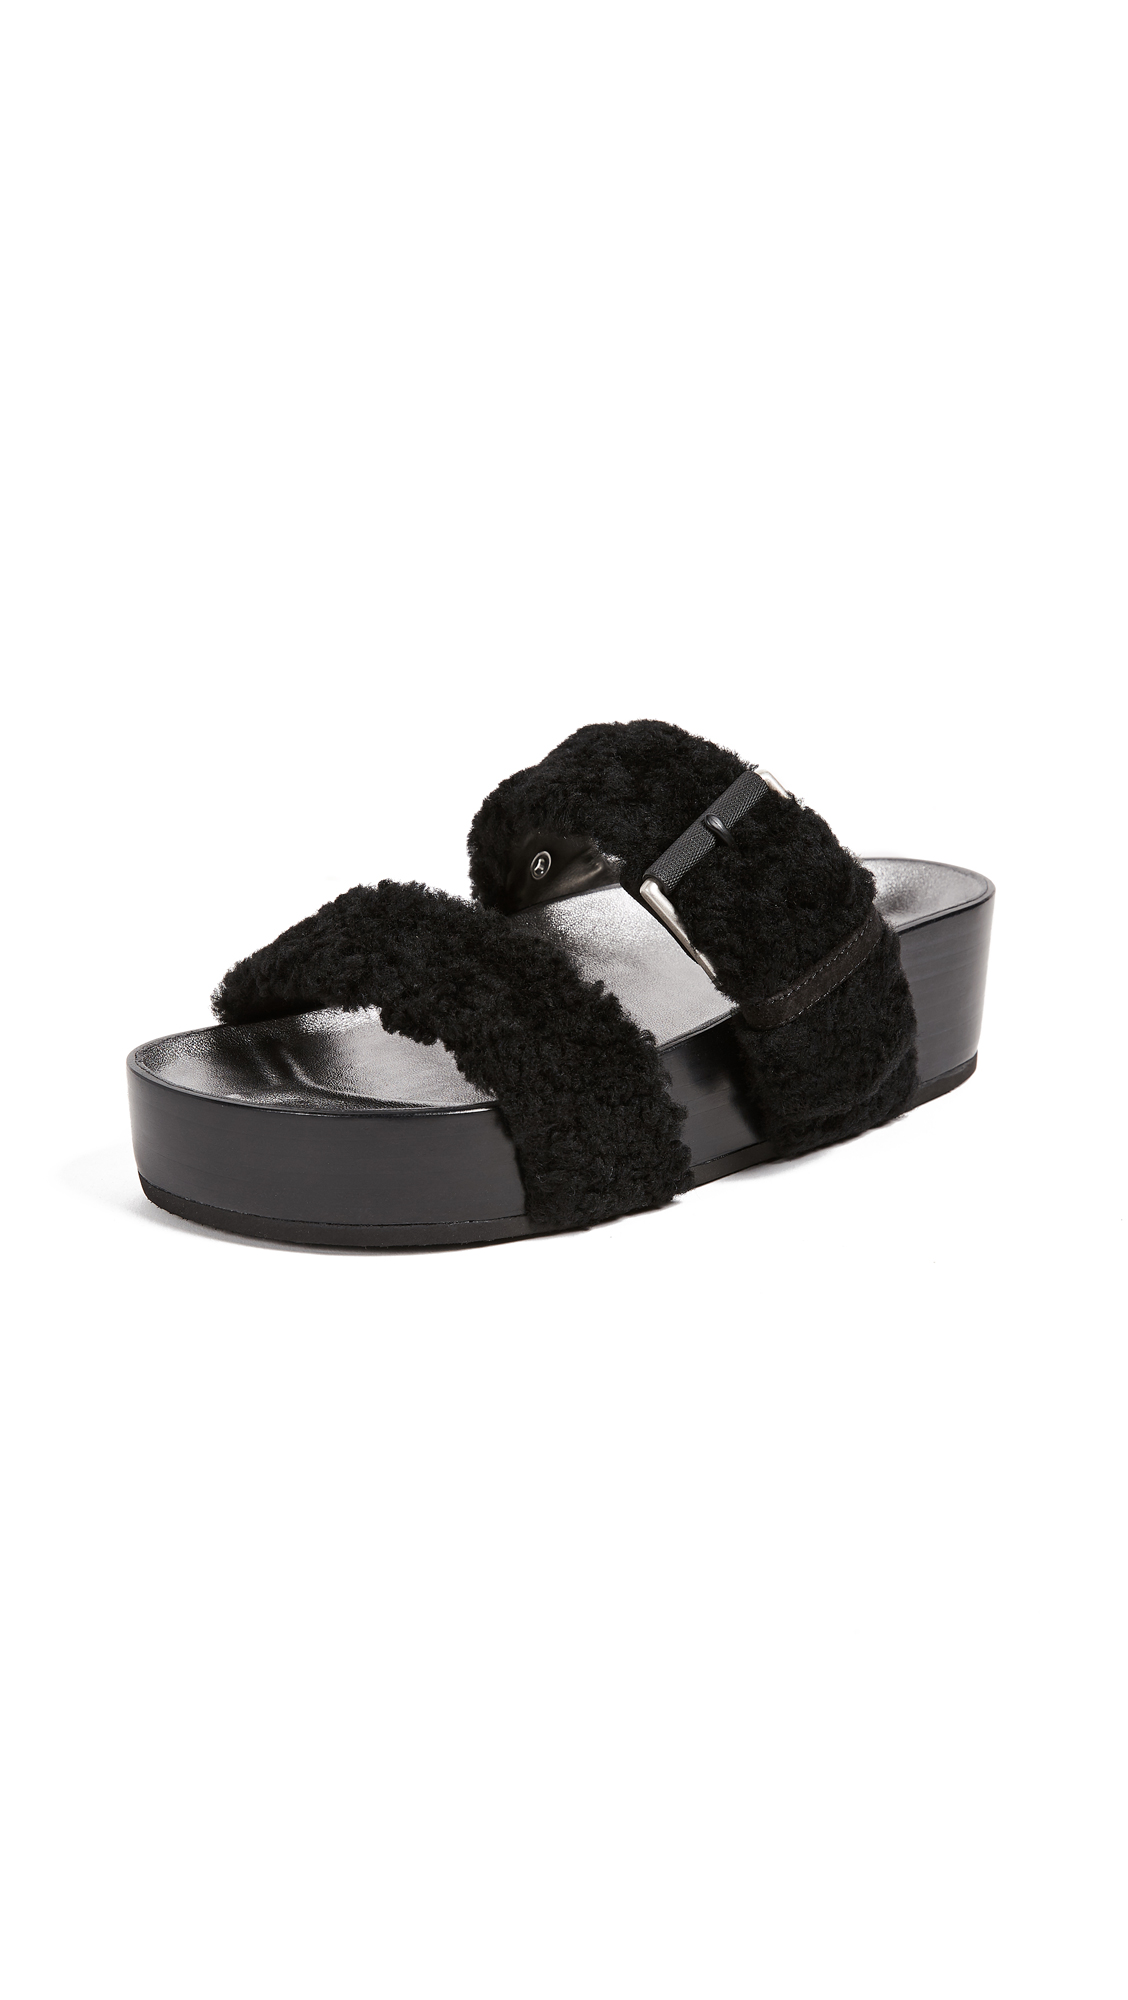 Rag & Bone Evin Platform Sandals - Black